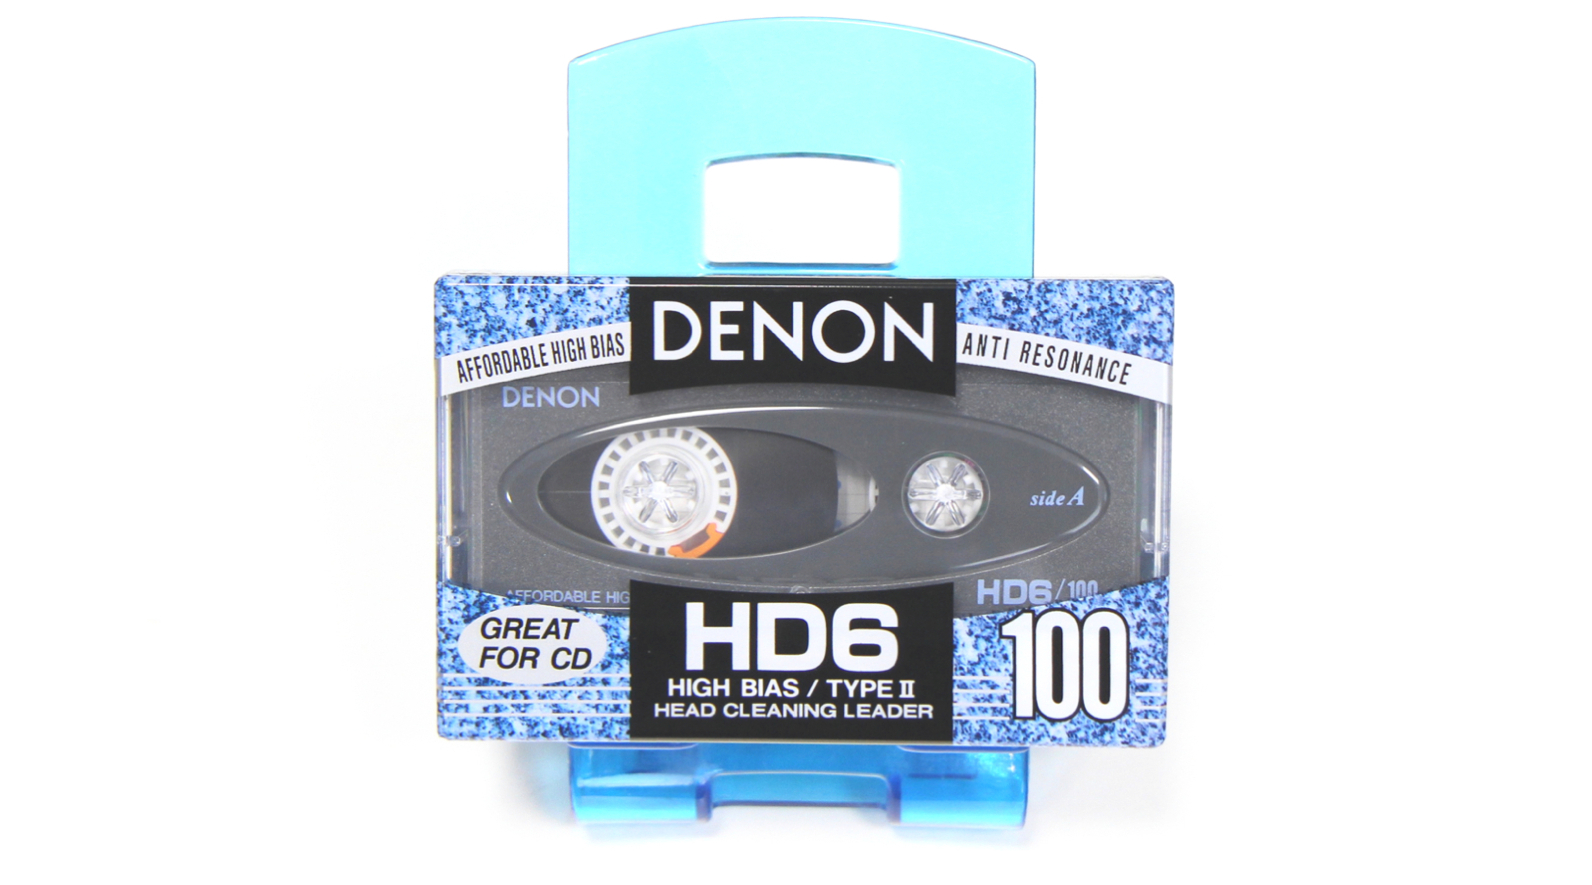 DENON HD6-100 Position Chrome